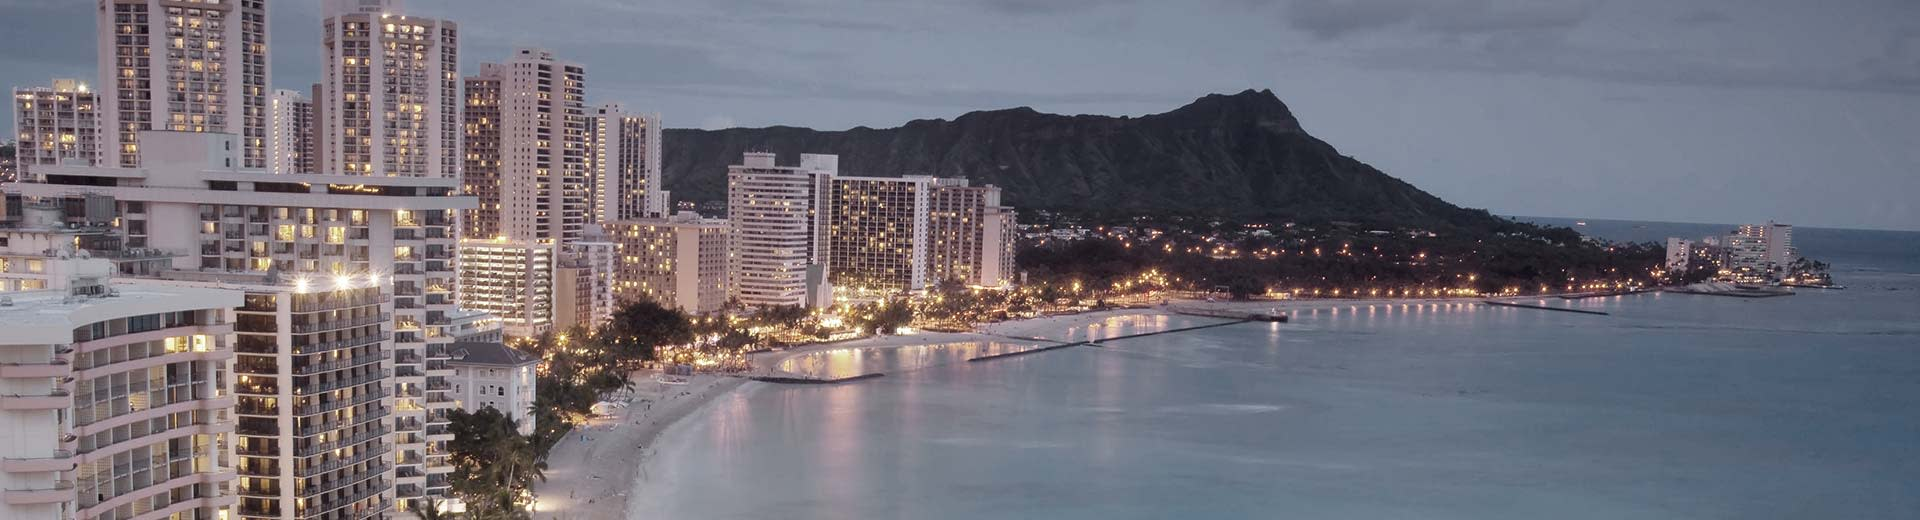 The beautiful coast of Honolulu with tall white hotels in the foreground